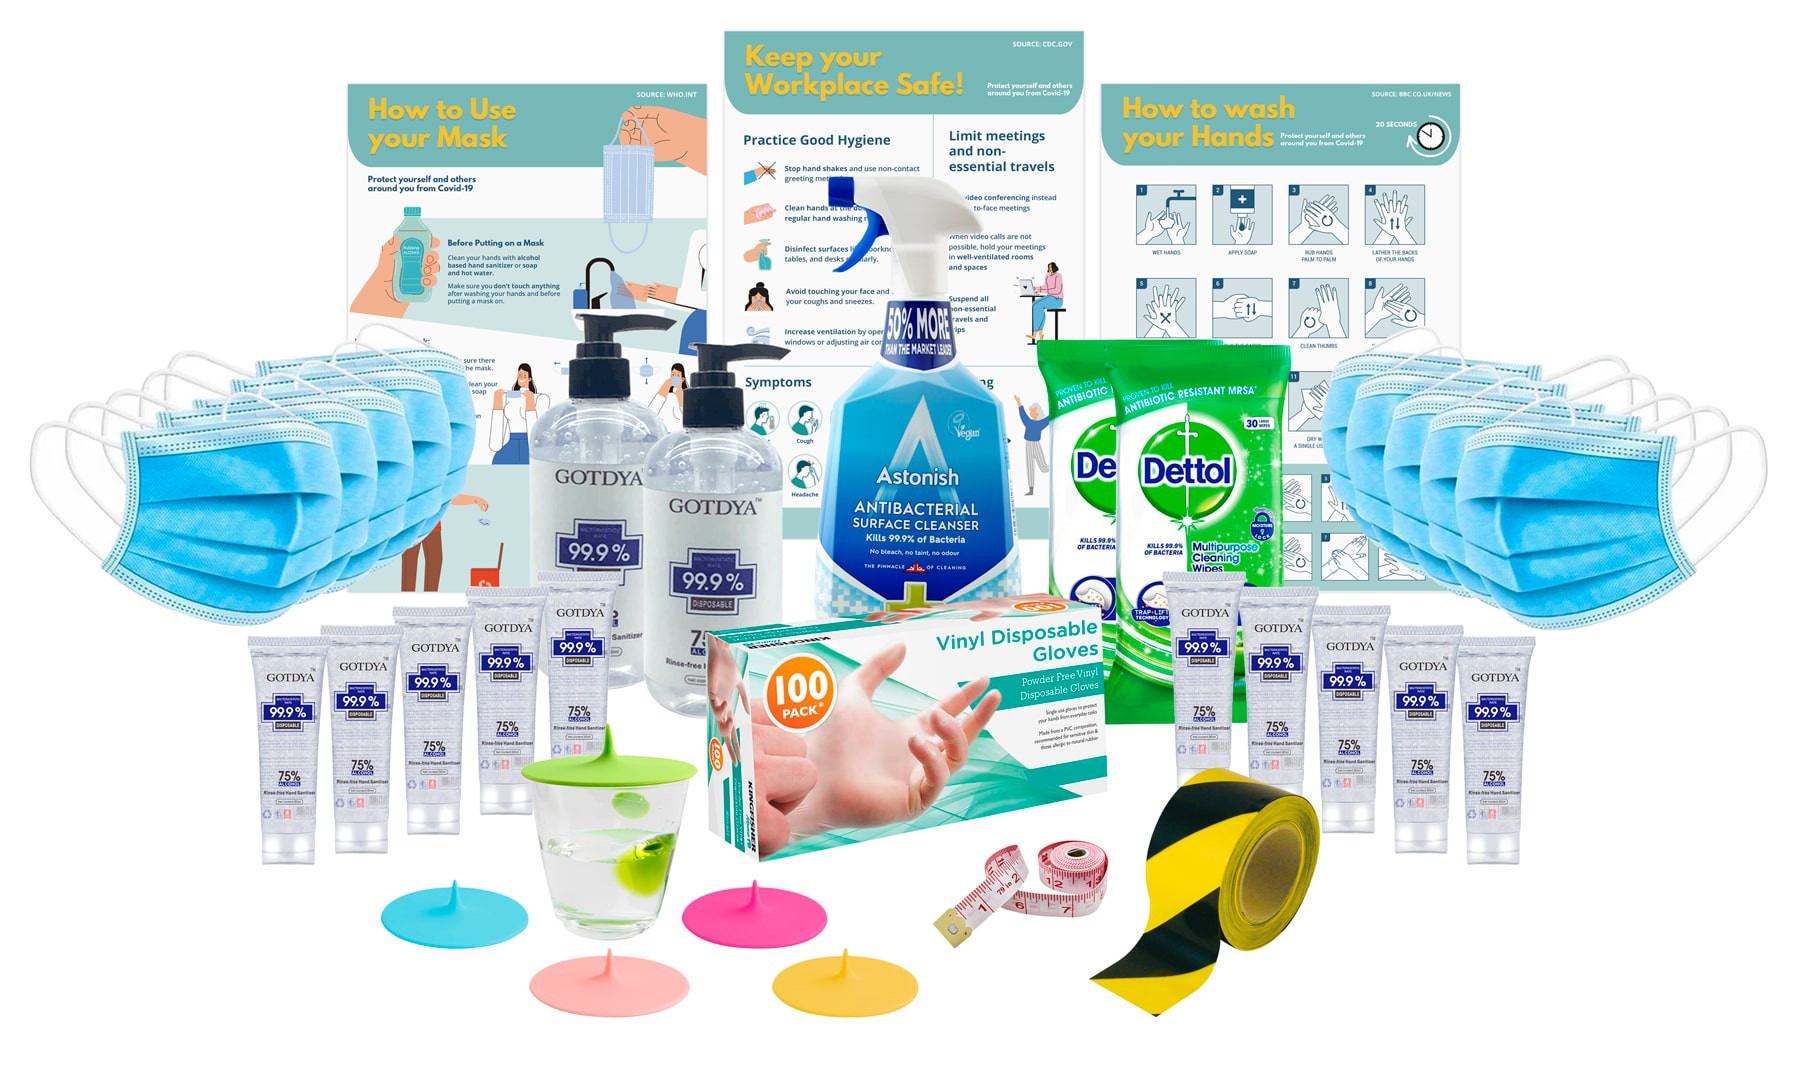 Office Protection Essentials Pack (Limited Availability) - 50 Pieces to Protect Your Office